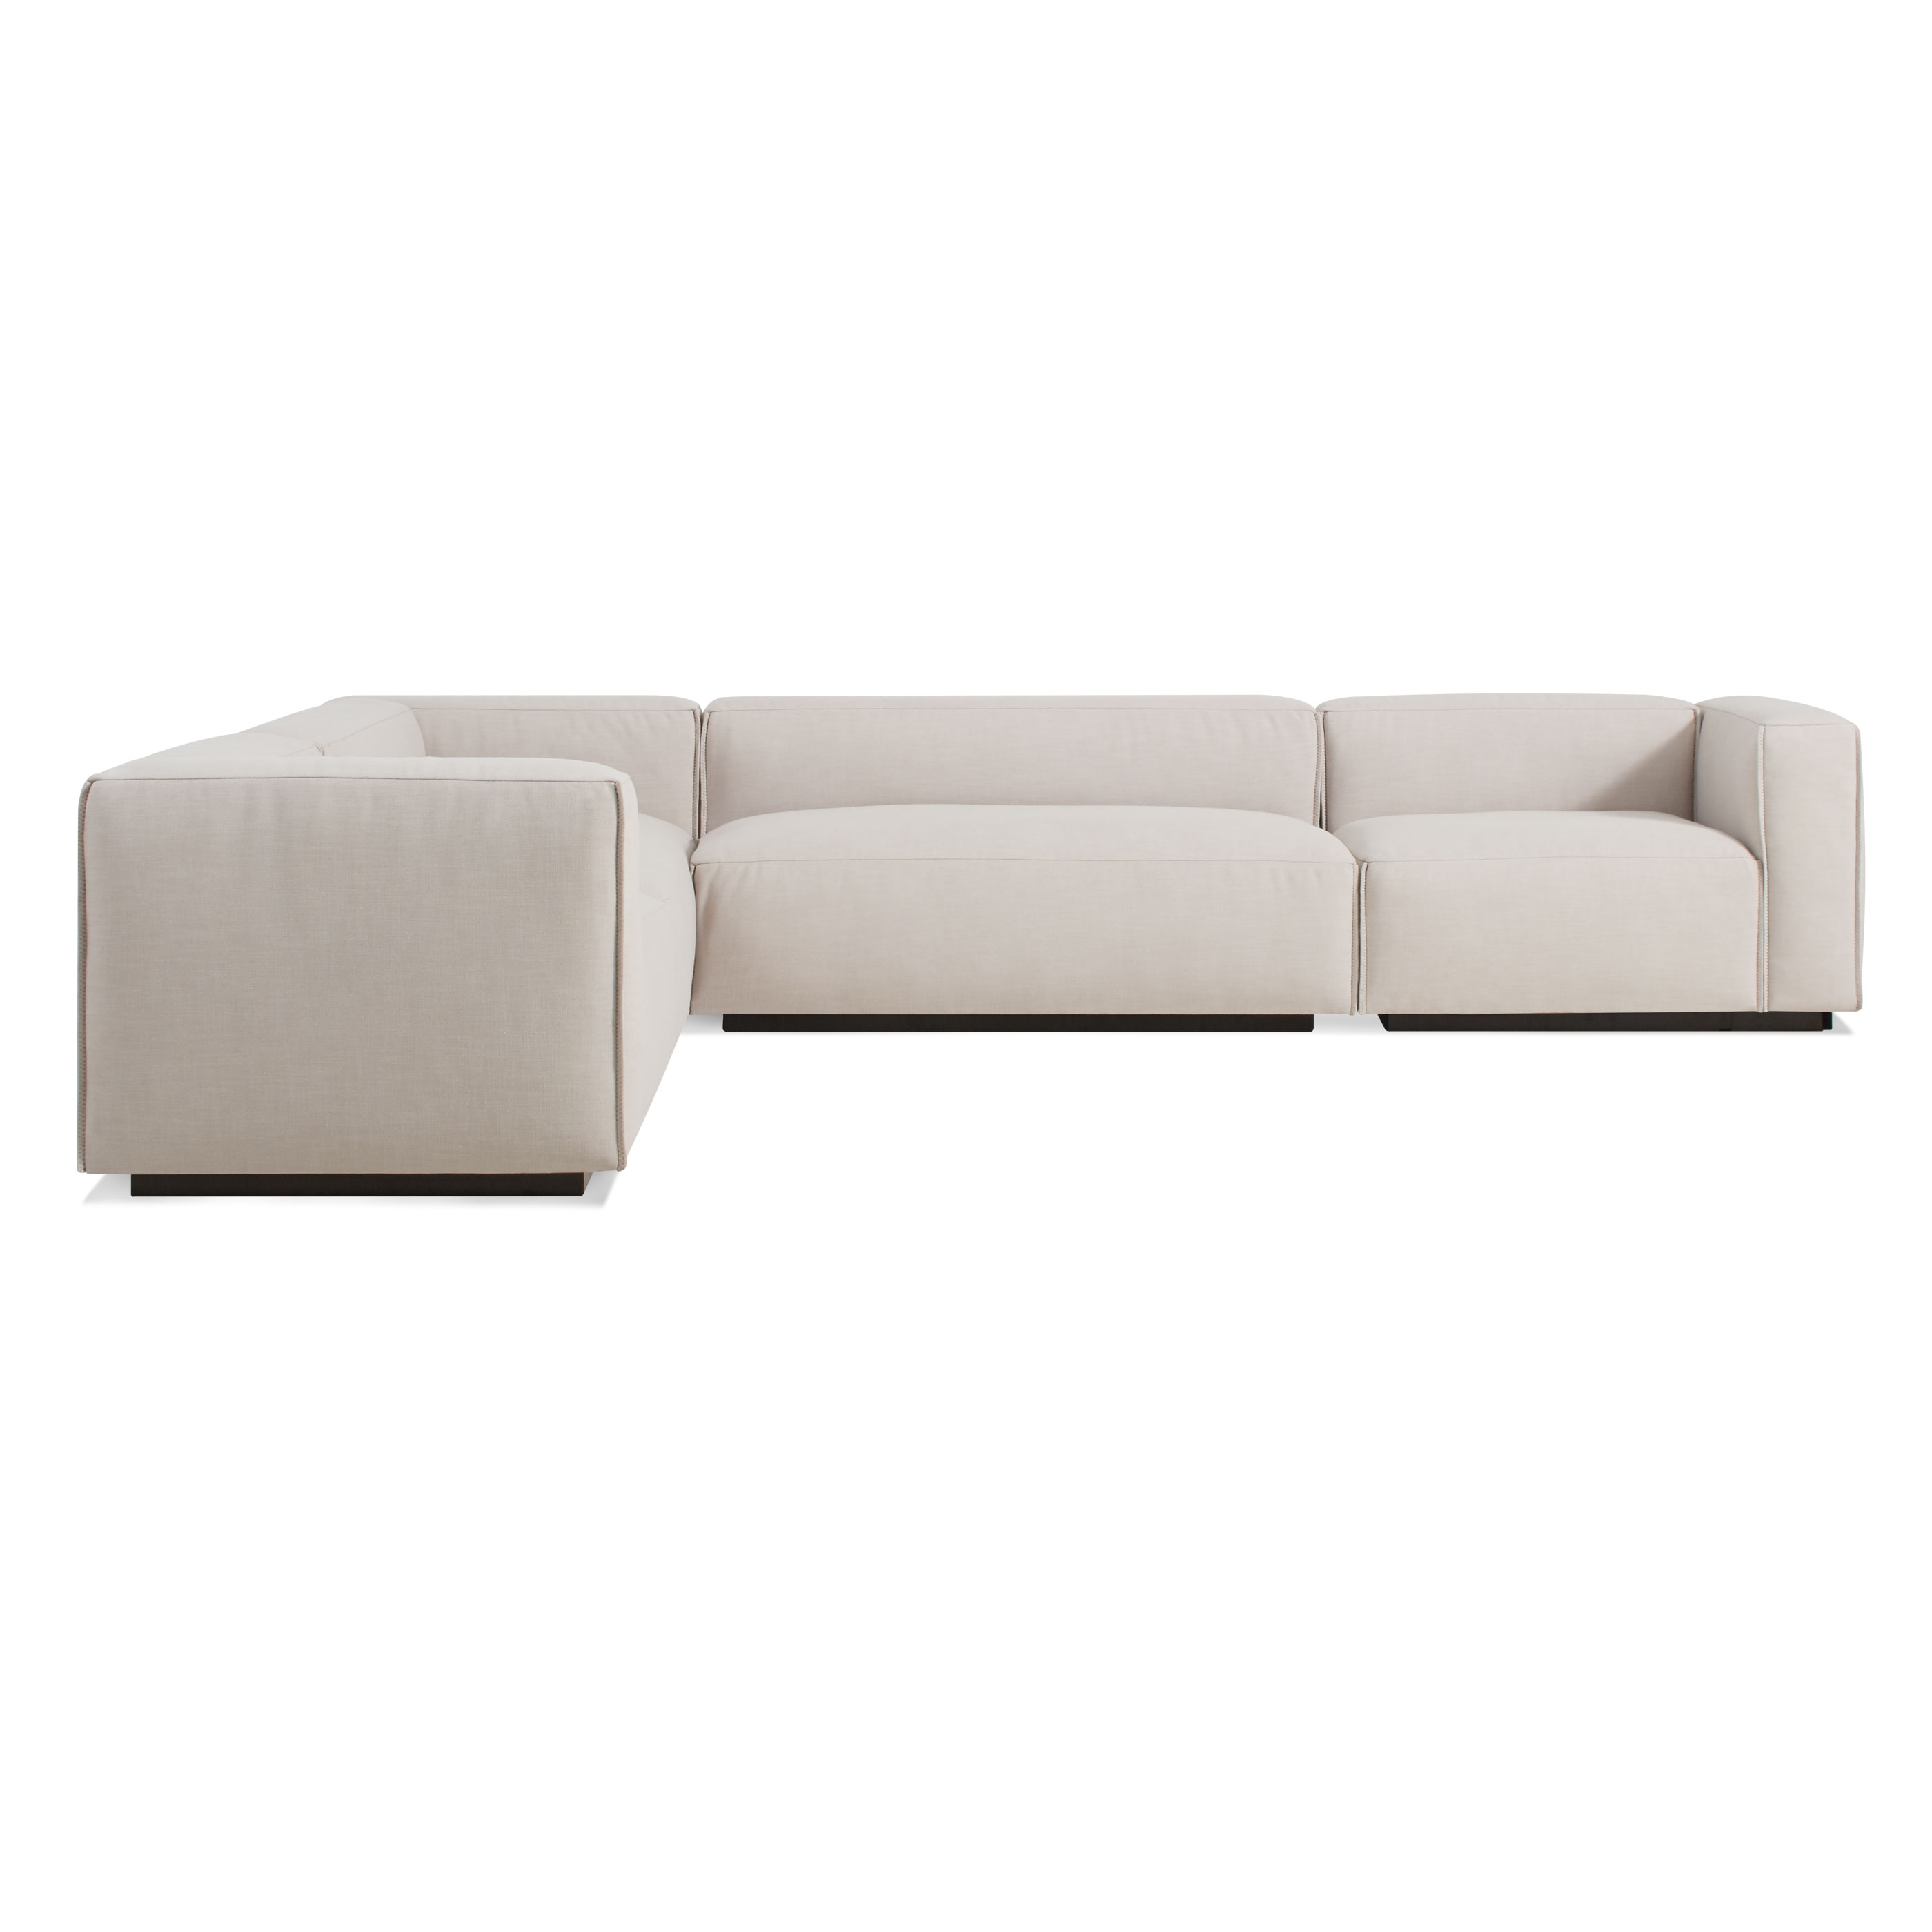 Cleon Large Modern Sectional Sofa | Blu Dot Intended For Hawaii Sectional Sofas (View 8 of 10)